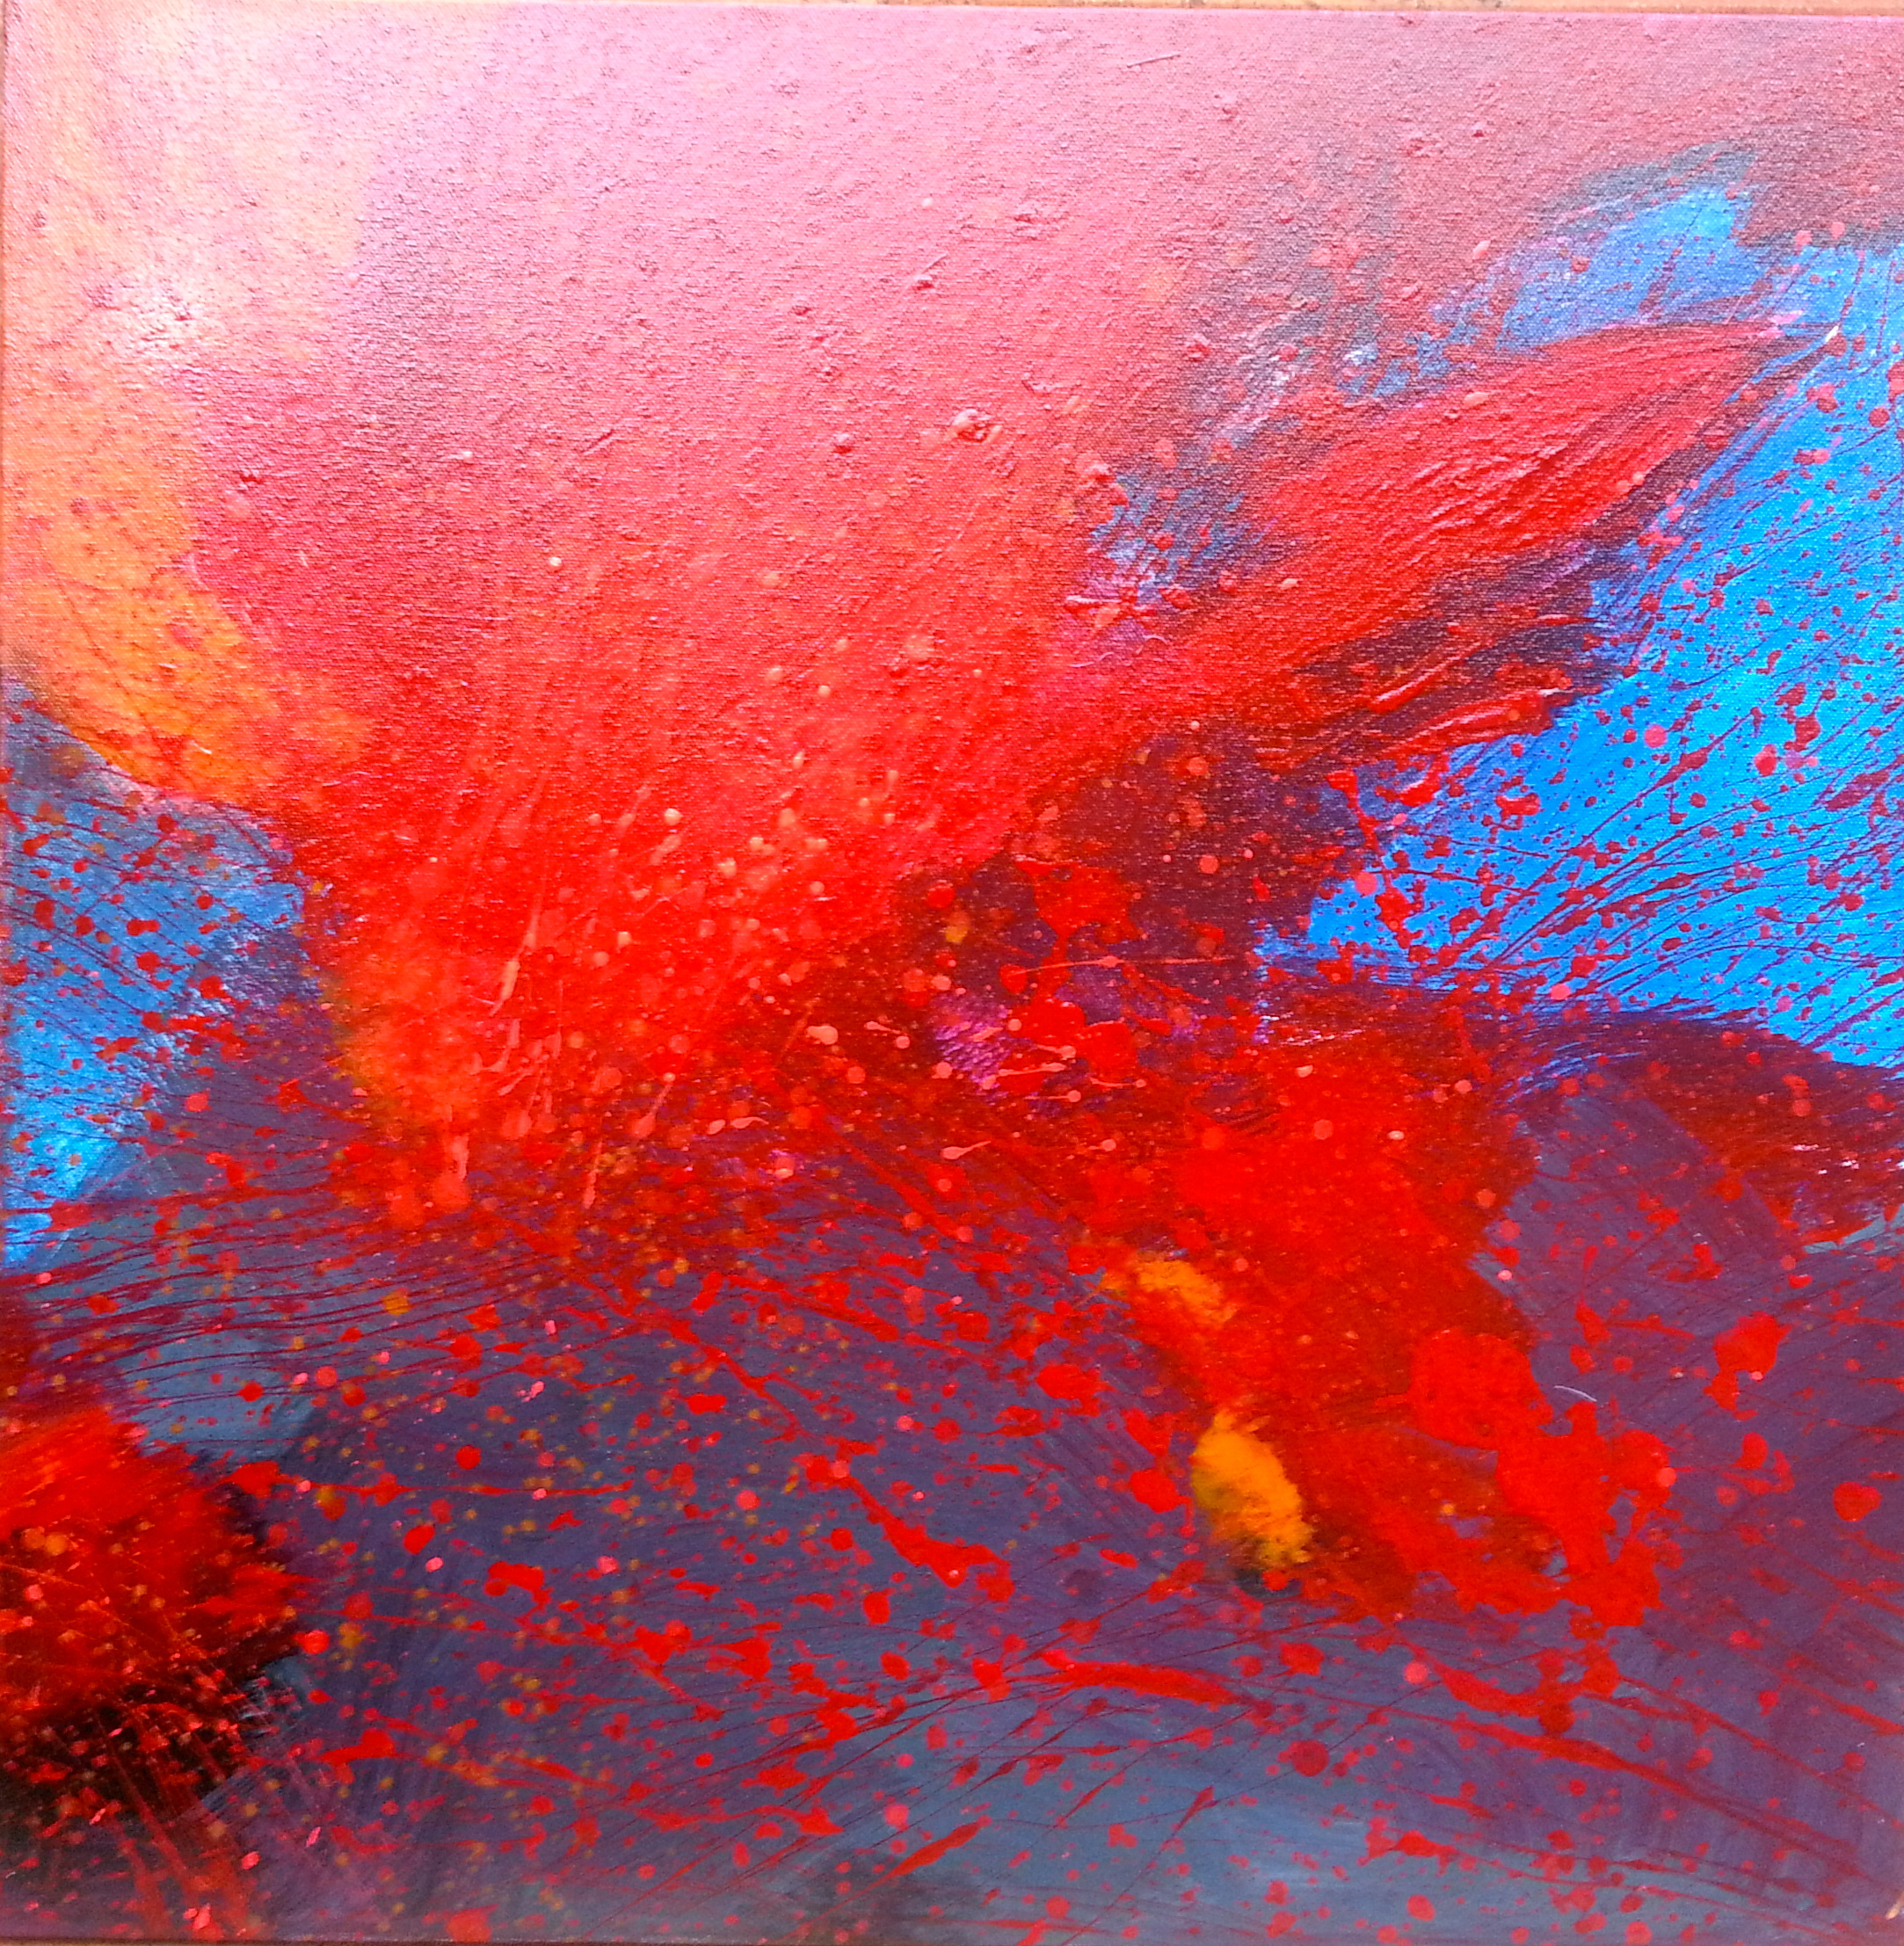 Combustion 1, 2014  24 x 24 inches